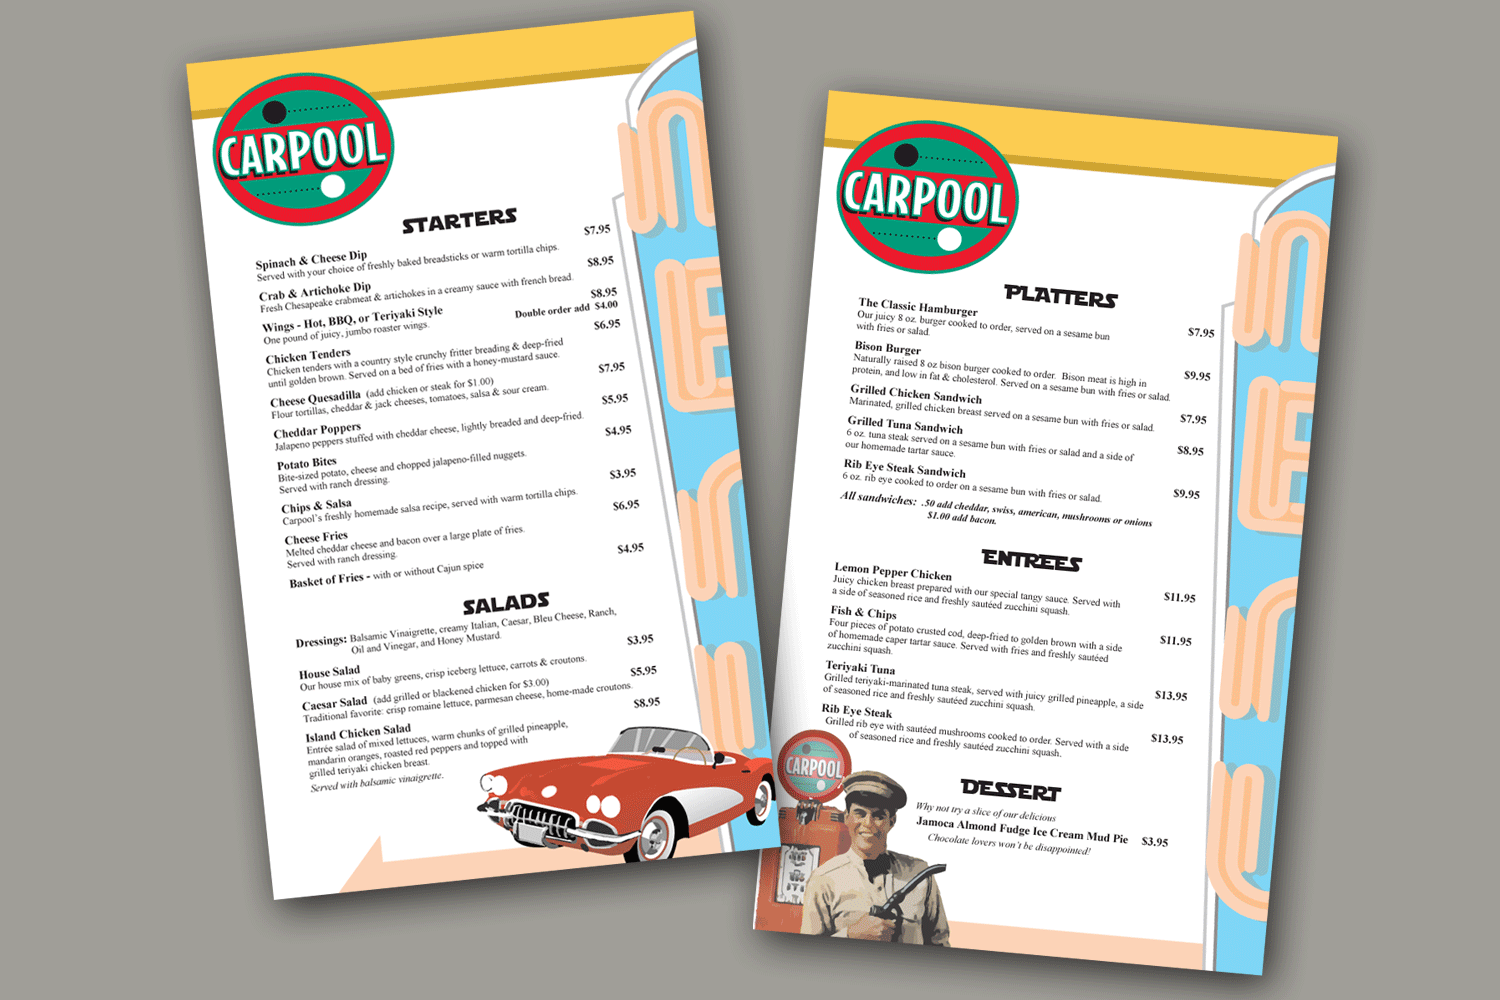 Carpool Menu